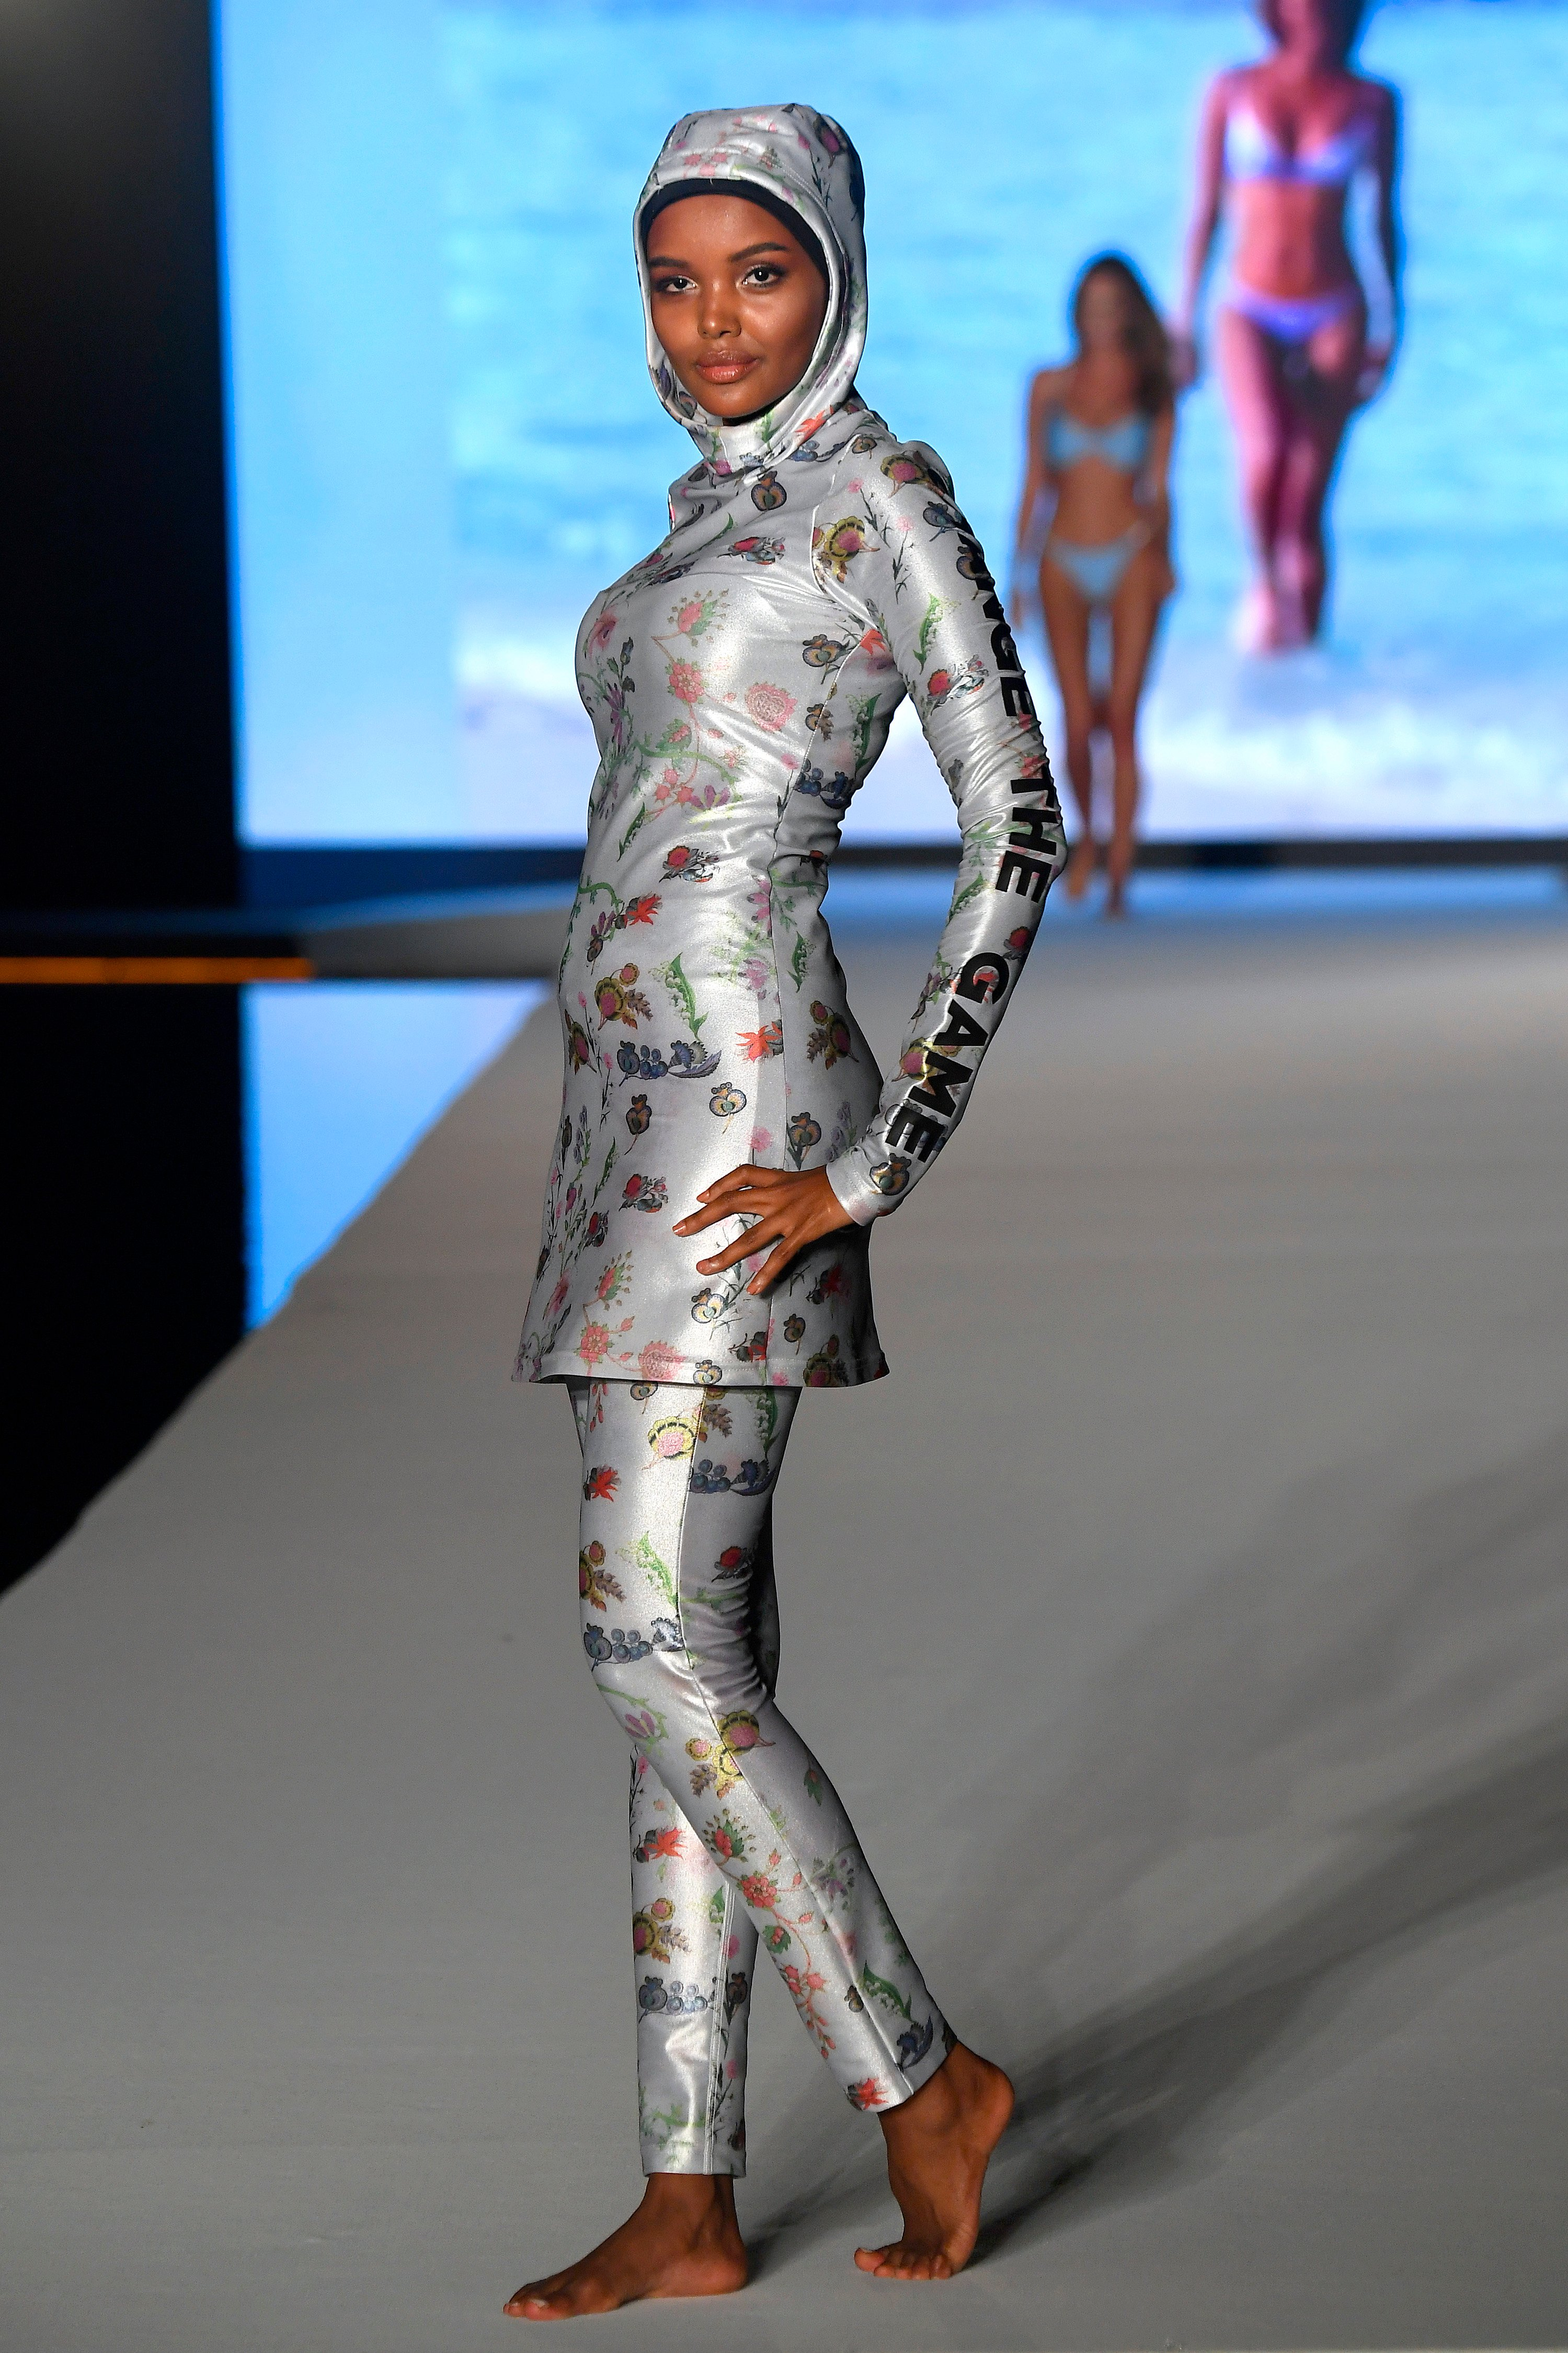 Halima Aden walks the runway during the 2019 Sports Illustrated Swimsuit Runway Show During Miami Swim Week At W South Beach on July 14, 2019 in Miami Beach, Florida. (Photo by Frazer Harrison/Getty Images for Sports Illustrated)